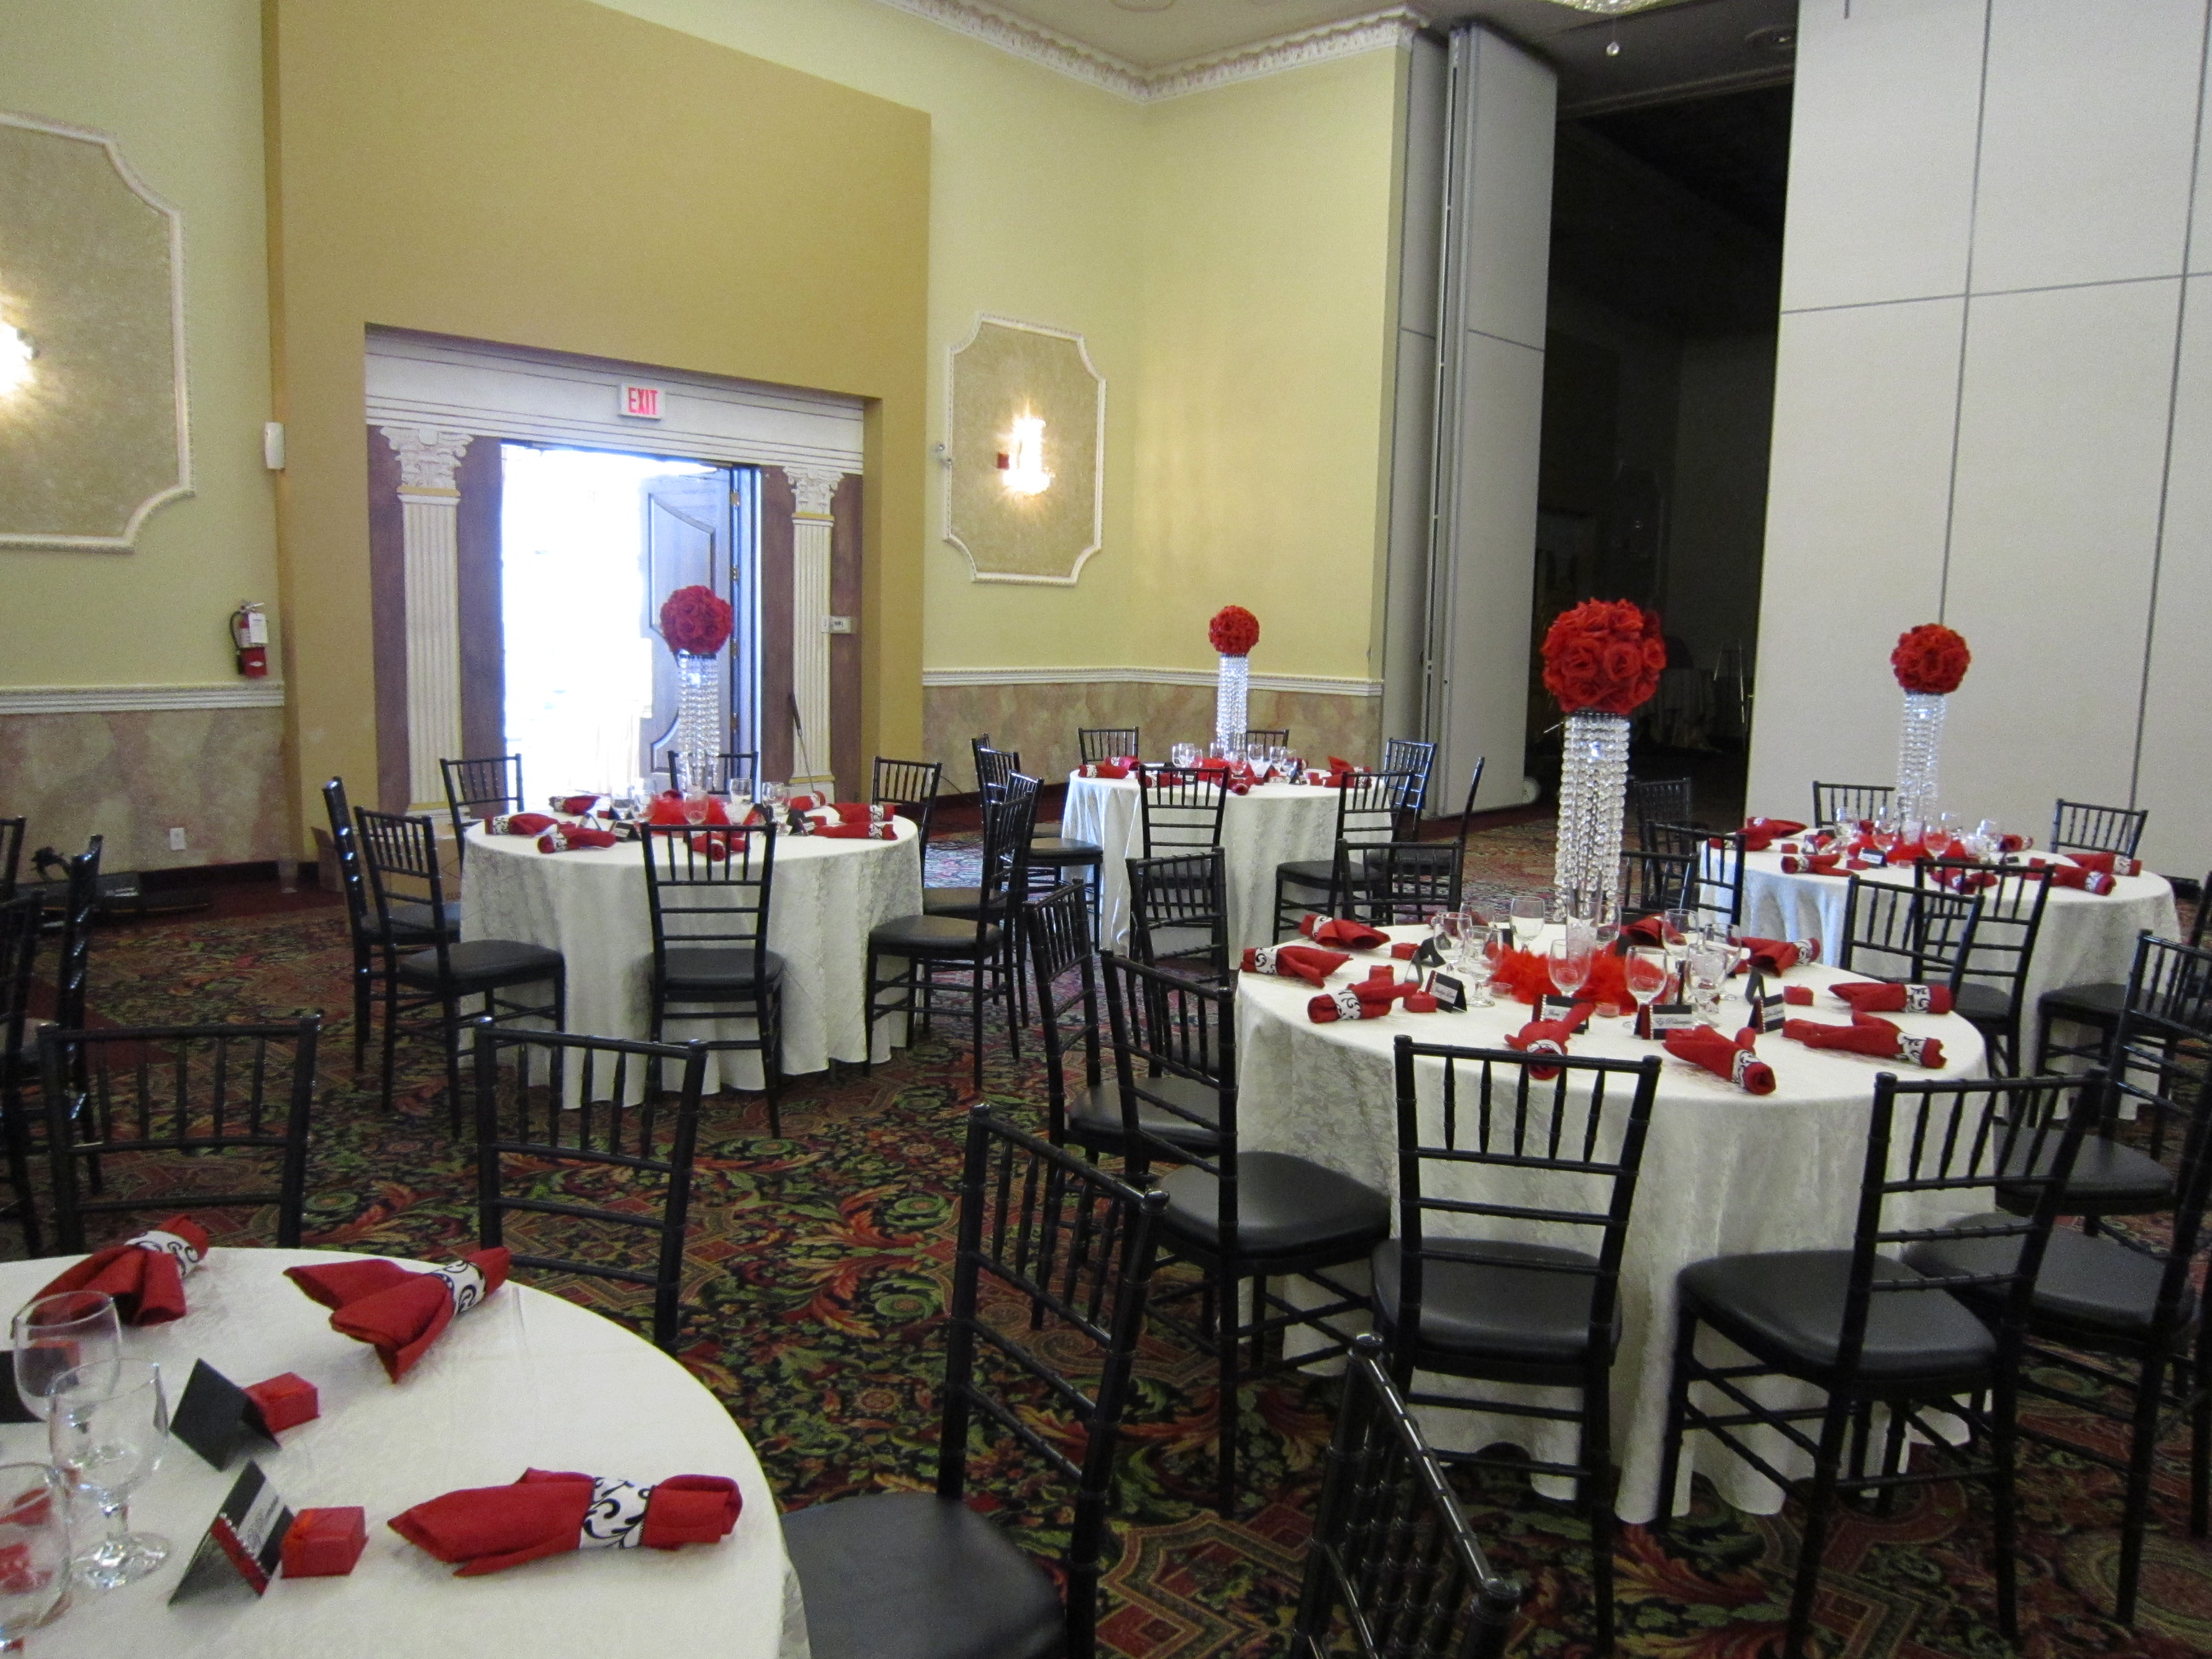 Th Birthday Party With Red Rose Ball Crystal Centerpieces - Table decoration ideas for 18th birthday